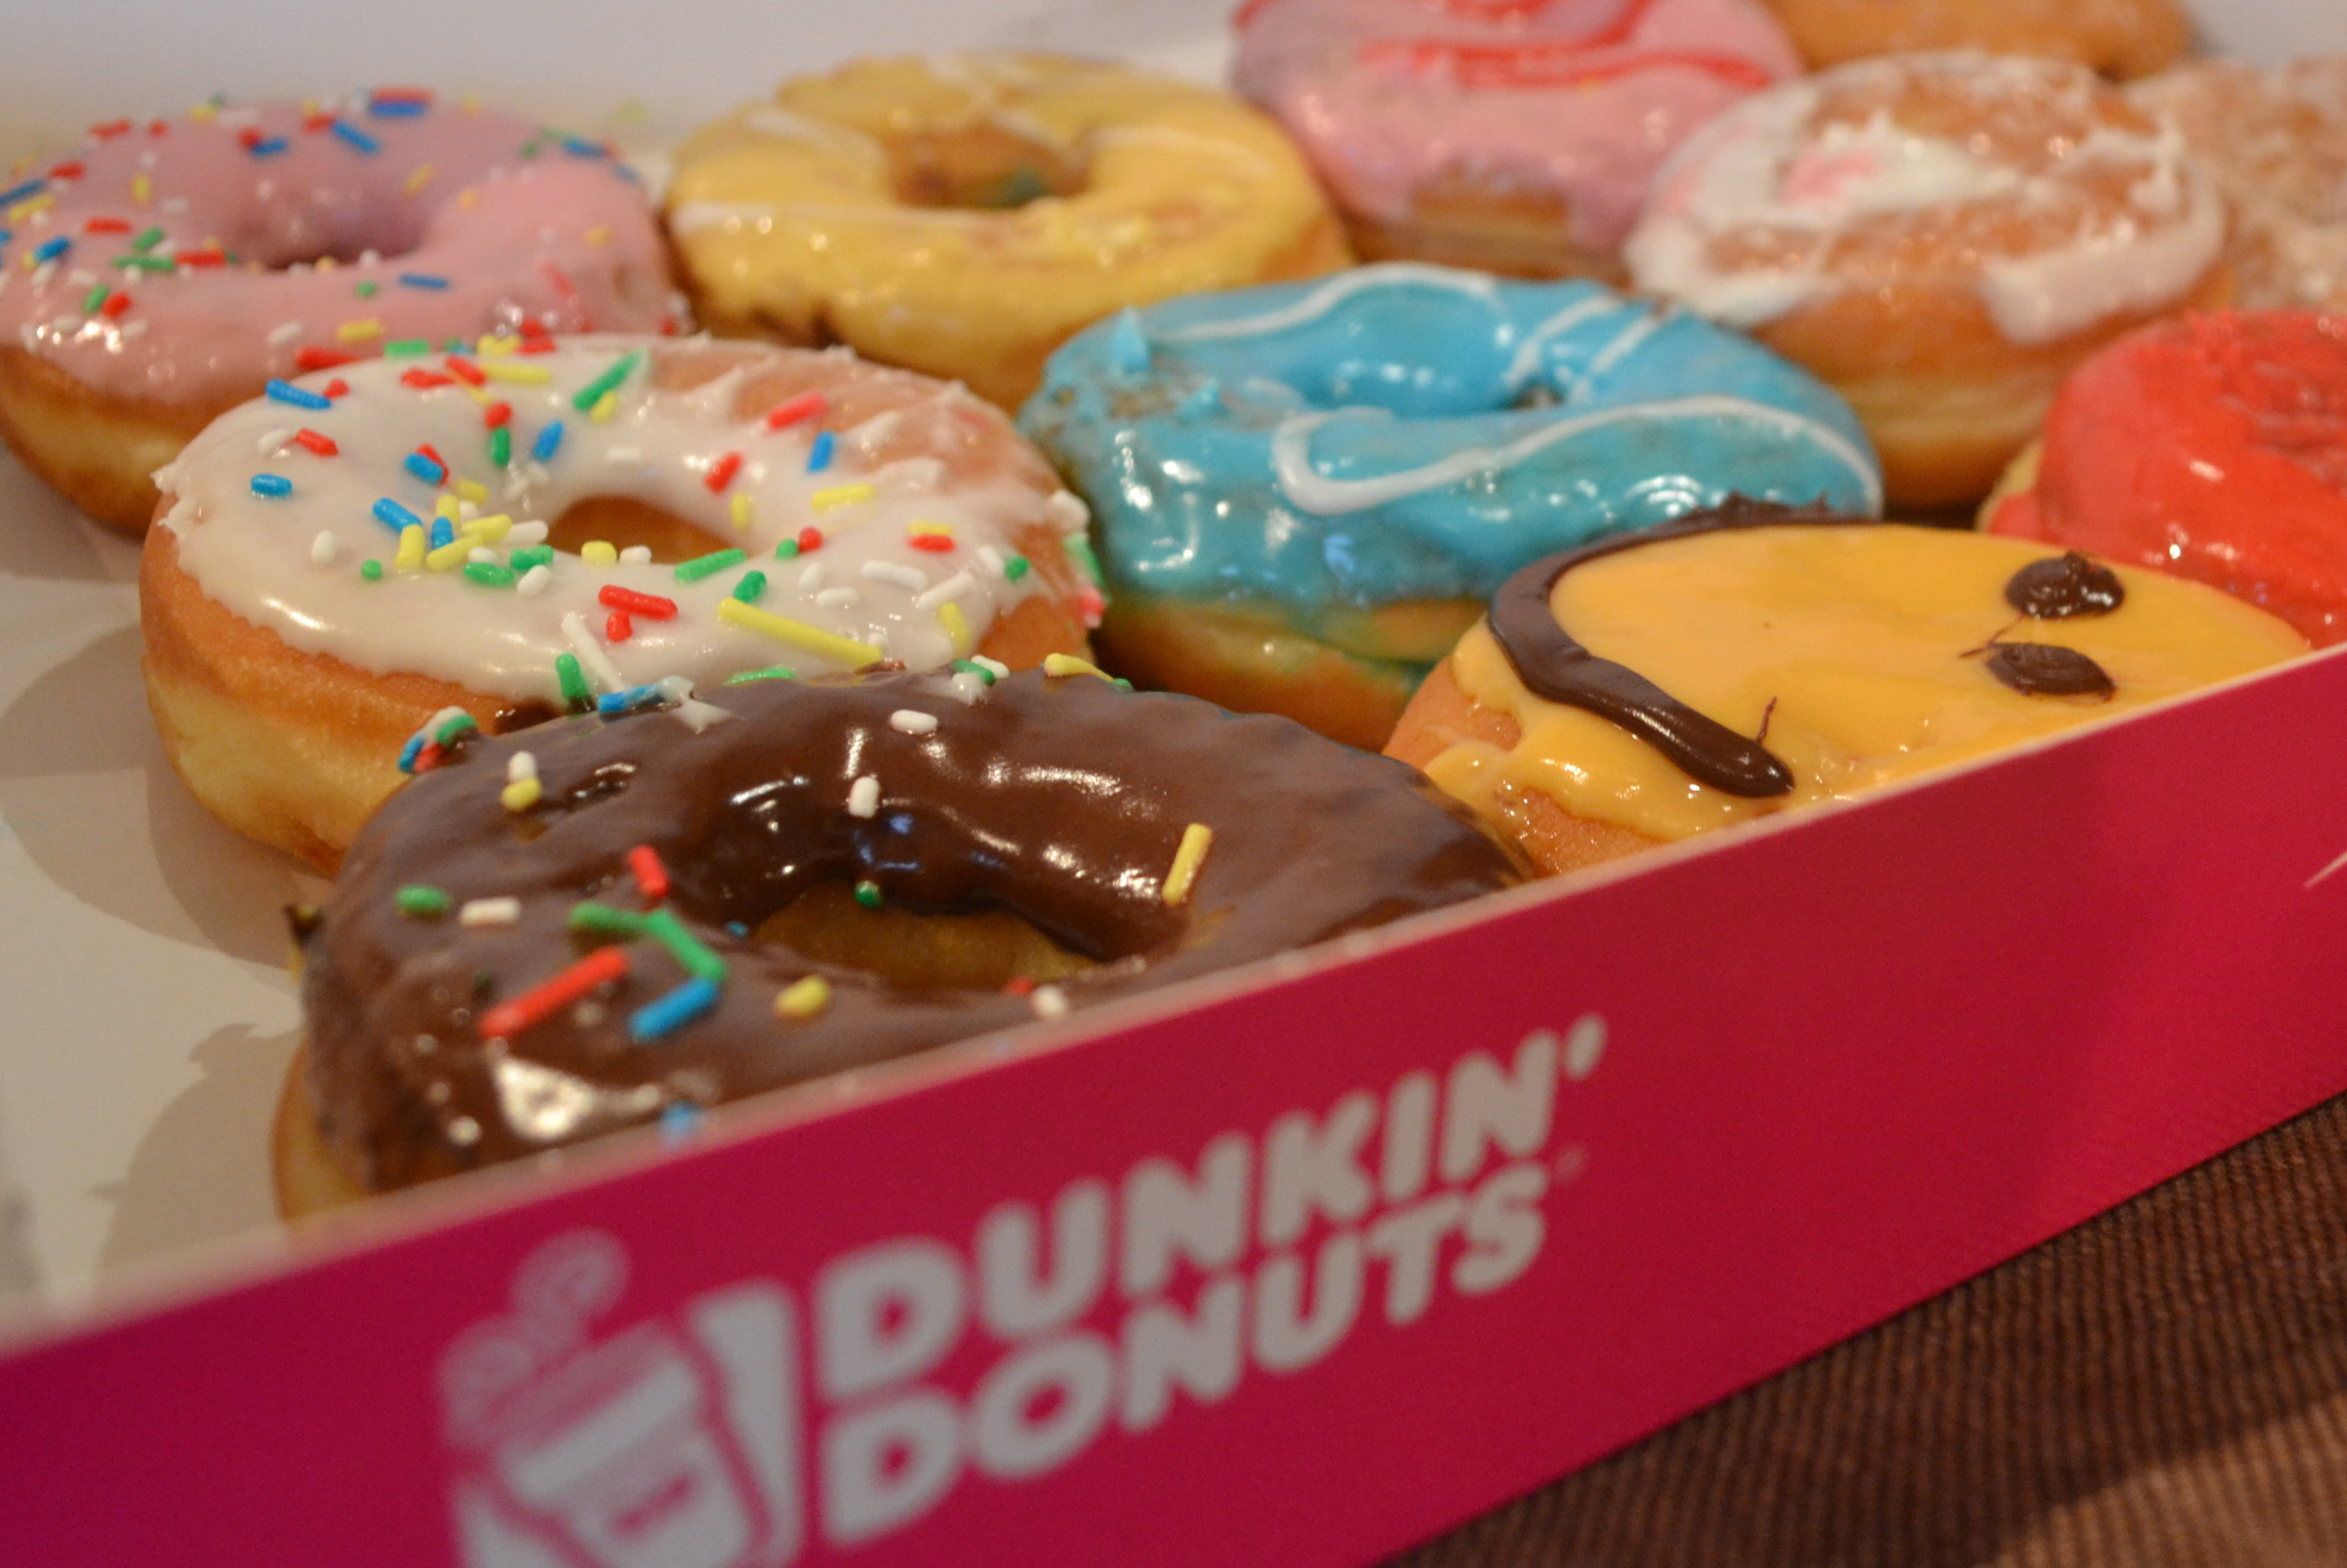 More sugar please: first Dunkin' Donuts opens in Amsterdam ...